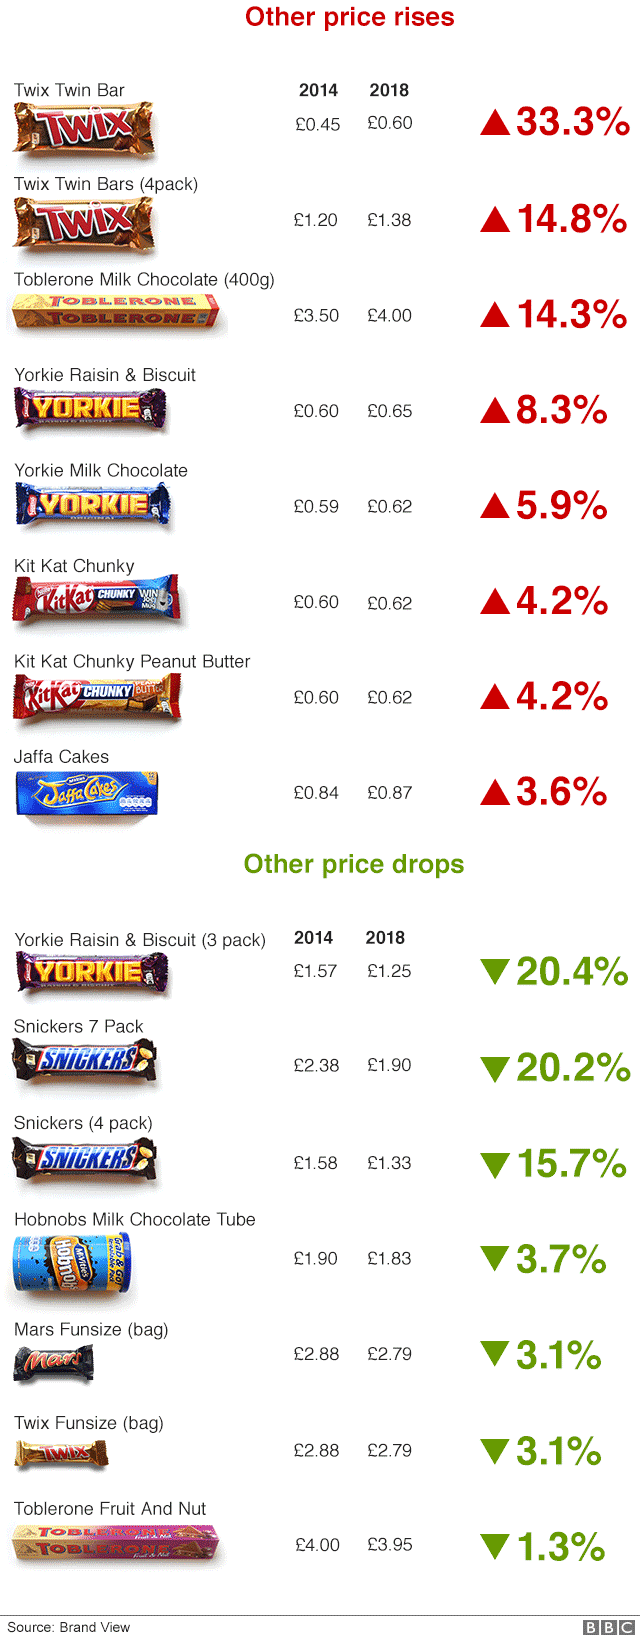 Chart showing other price changes